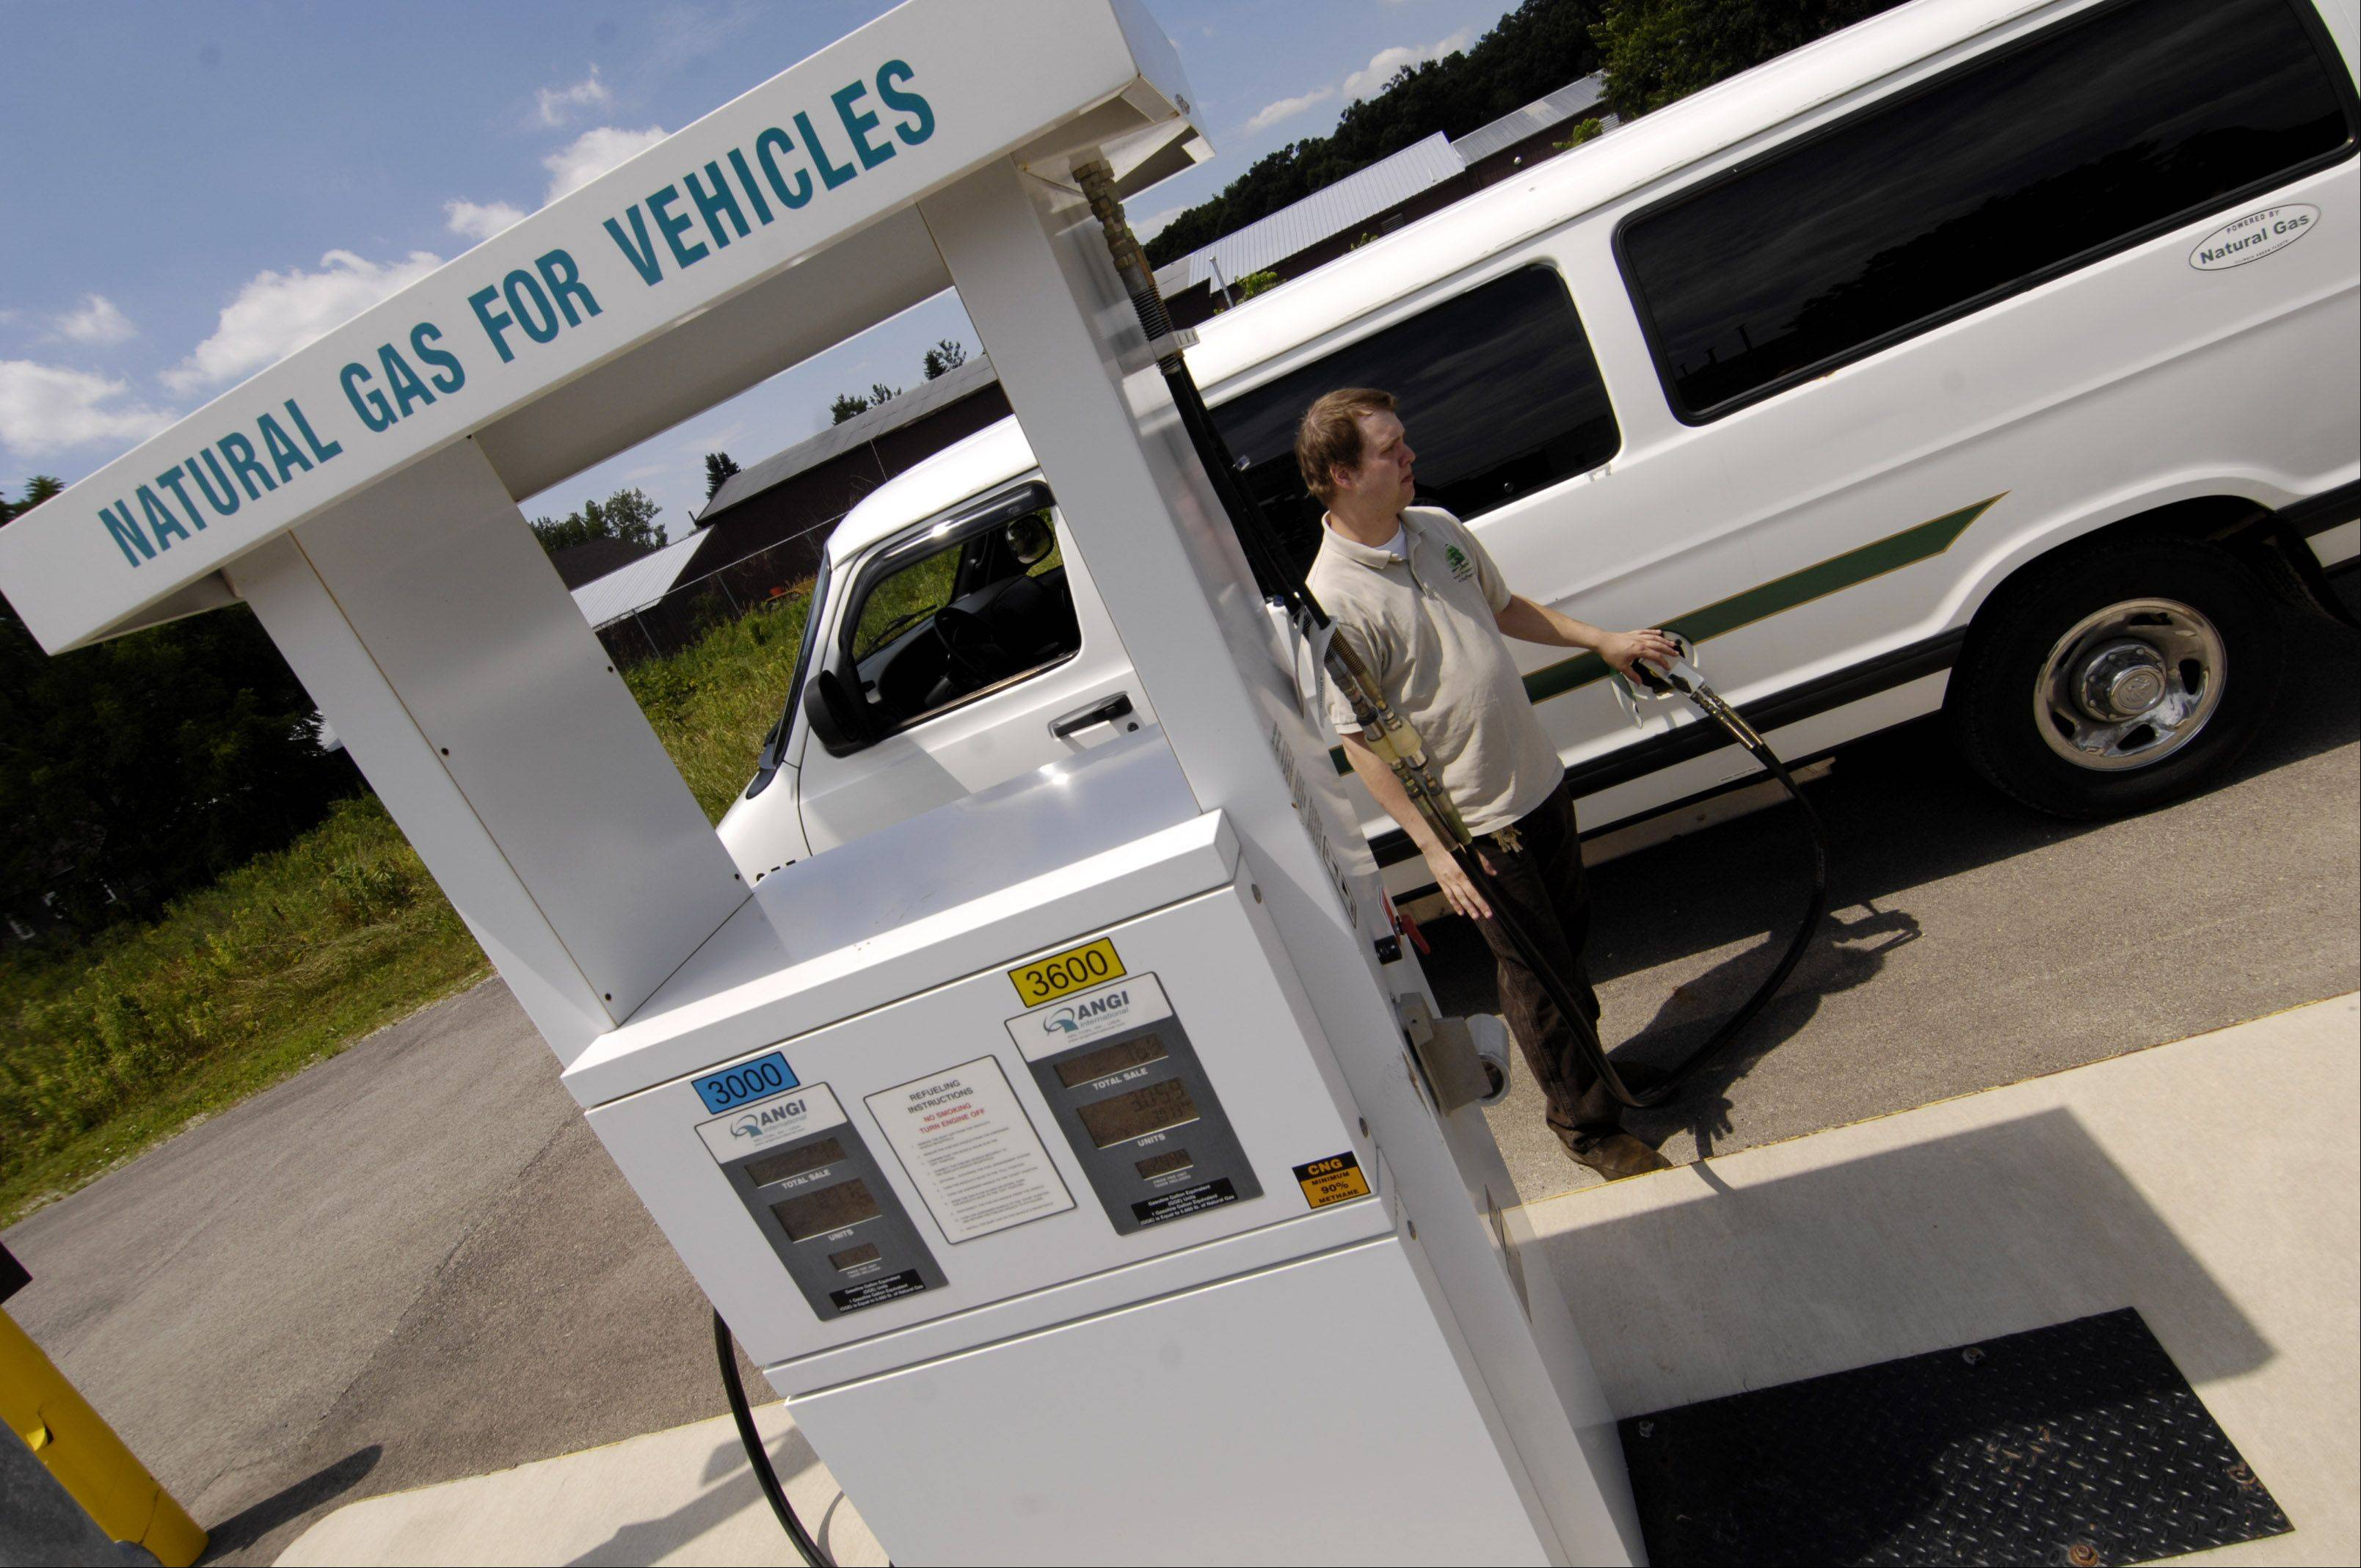 Christopher Lyon, assistant to the manager of fleet services at the Forest Preserve District of DuPage County, fuels a van with compressed natural gas at the Blackwell Forest Preserve fueling station.